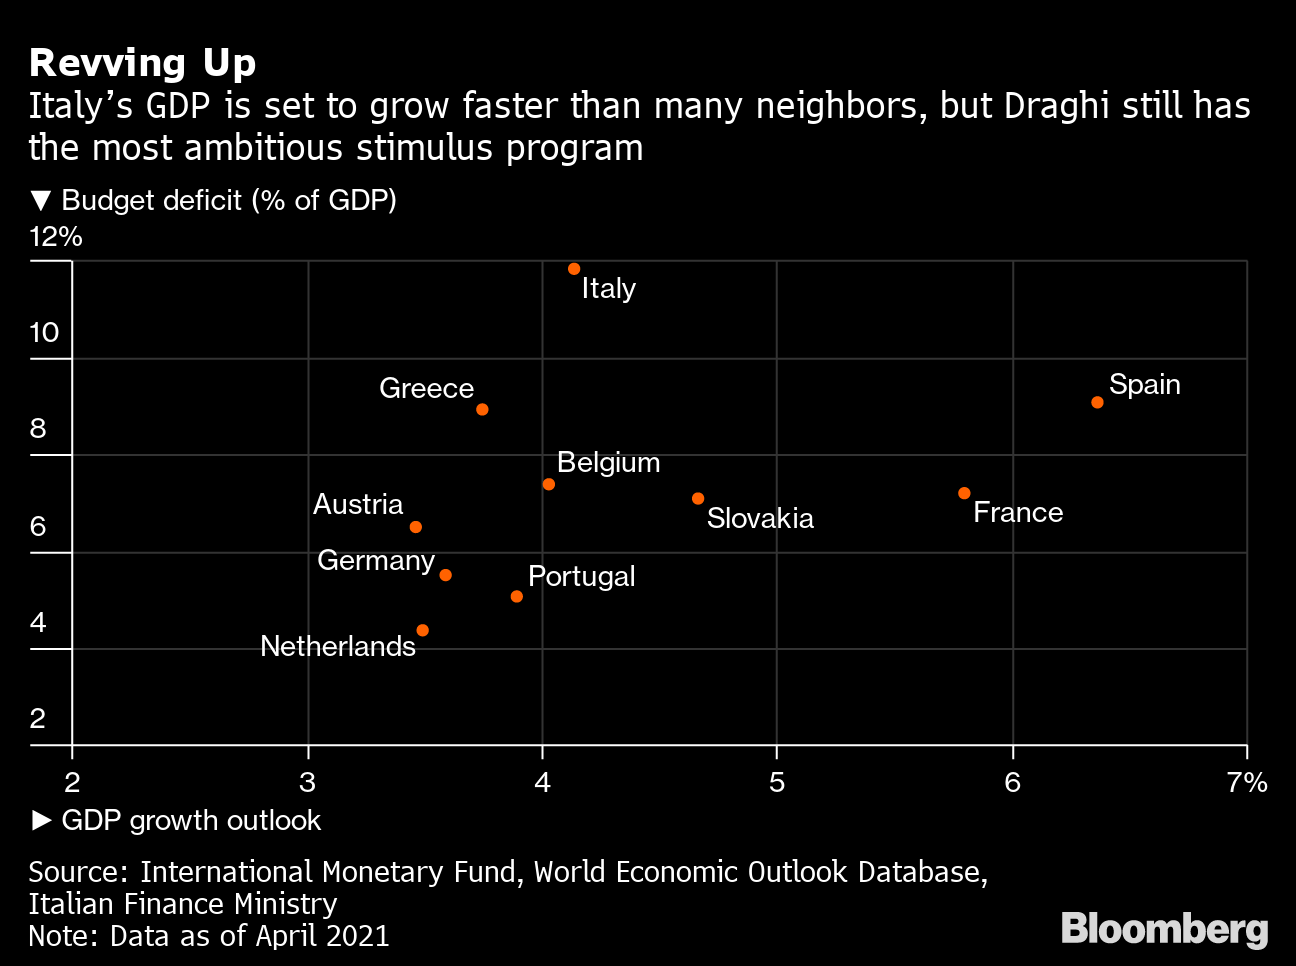 Draghi Is Betting the House With Europe's Biggest Stimulus Plan